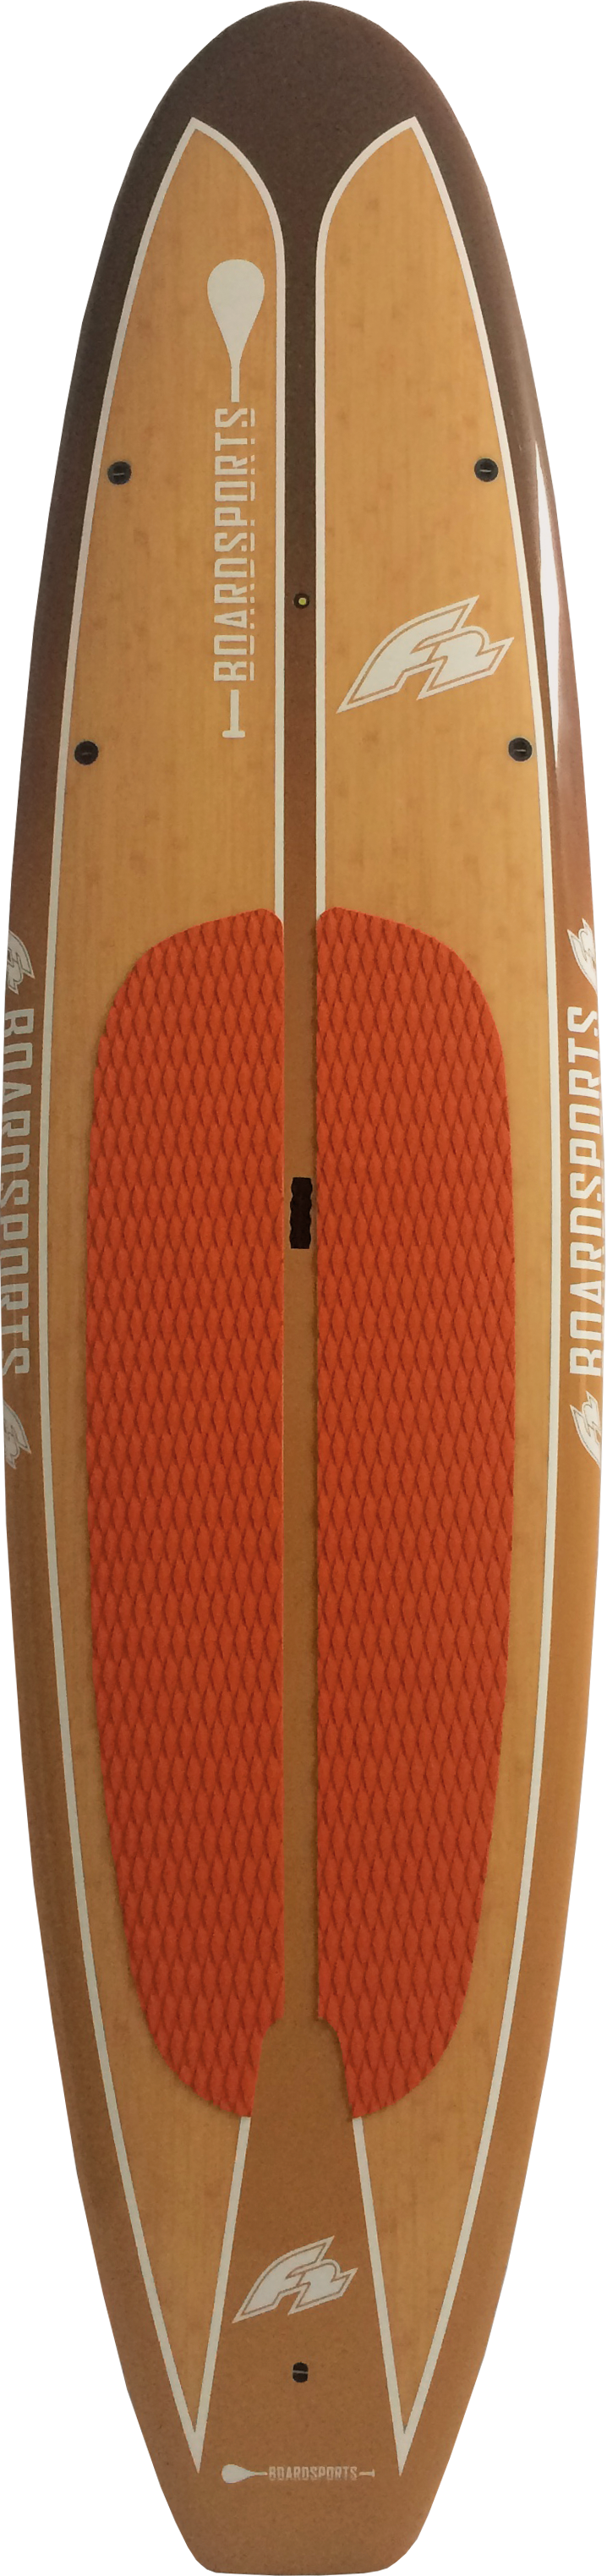 Ride Pro Bamboo - Top